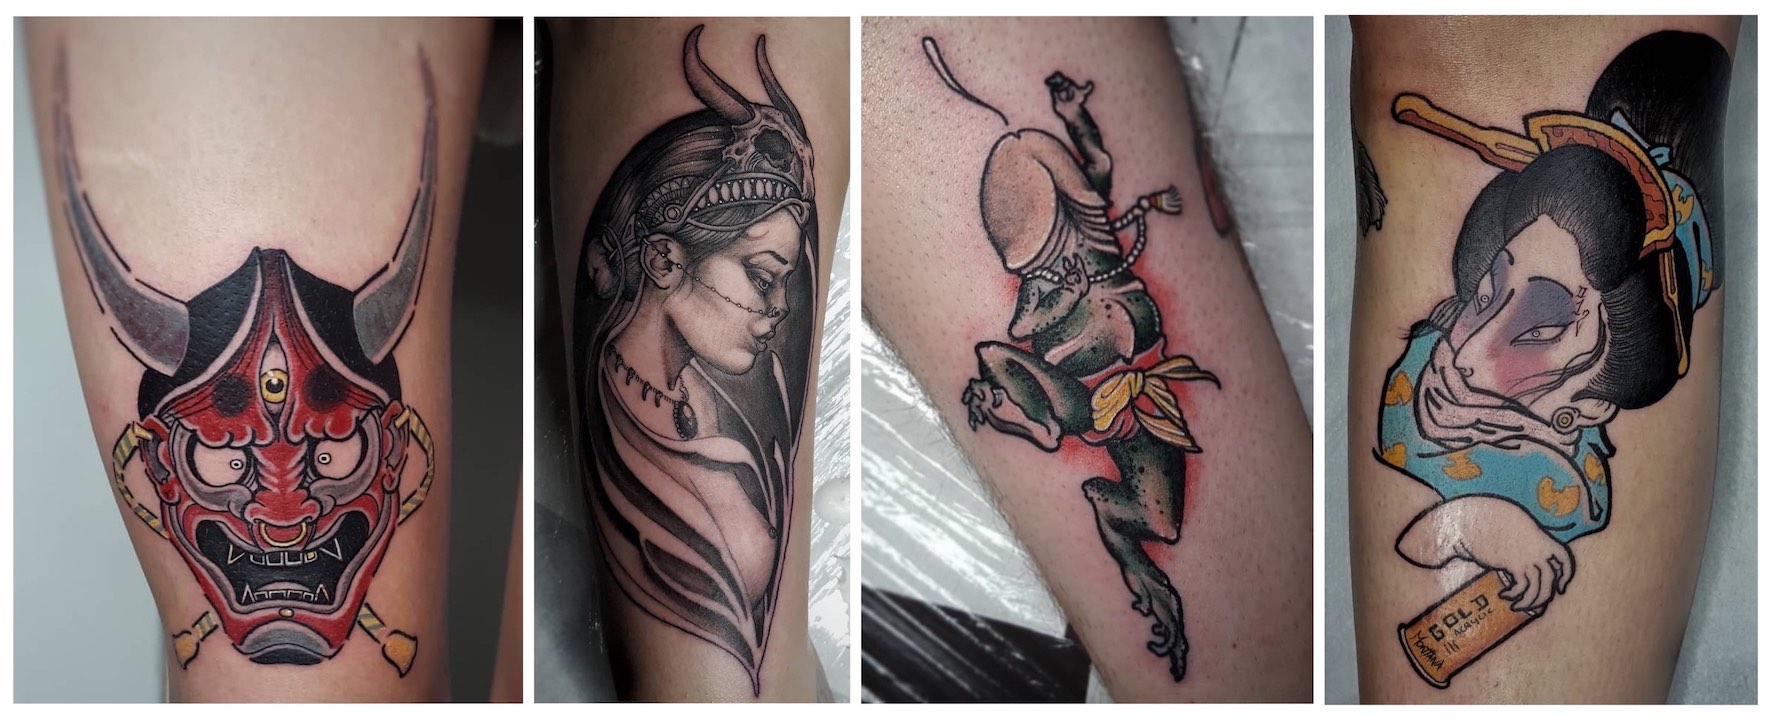 Tattoos done by Daniel Forster